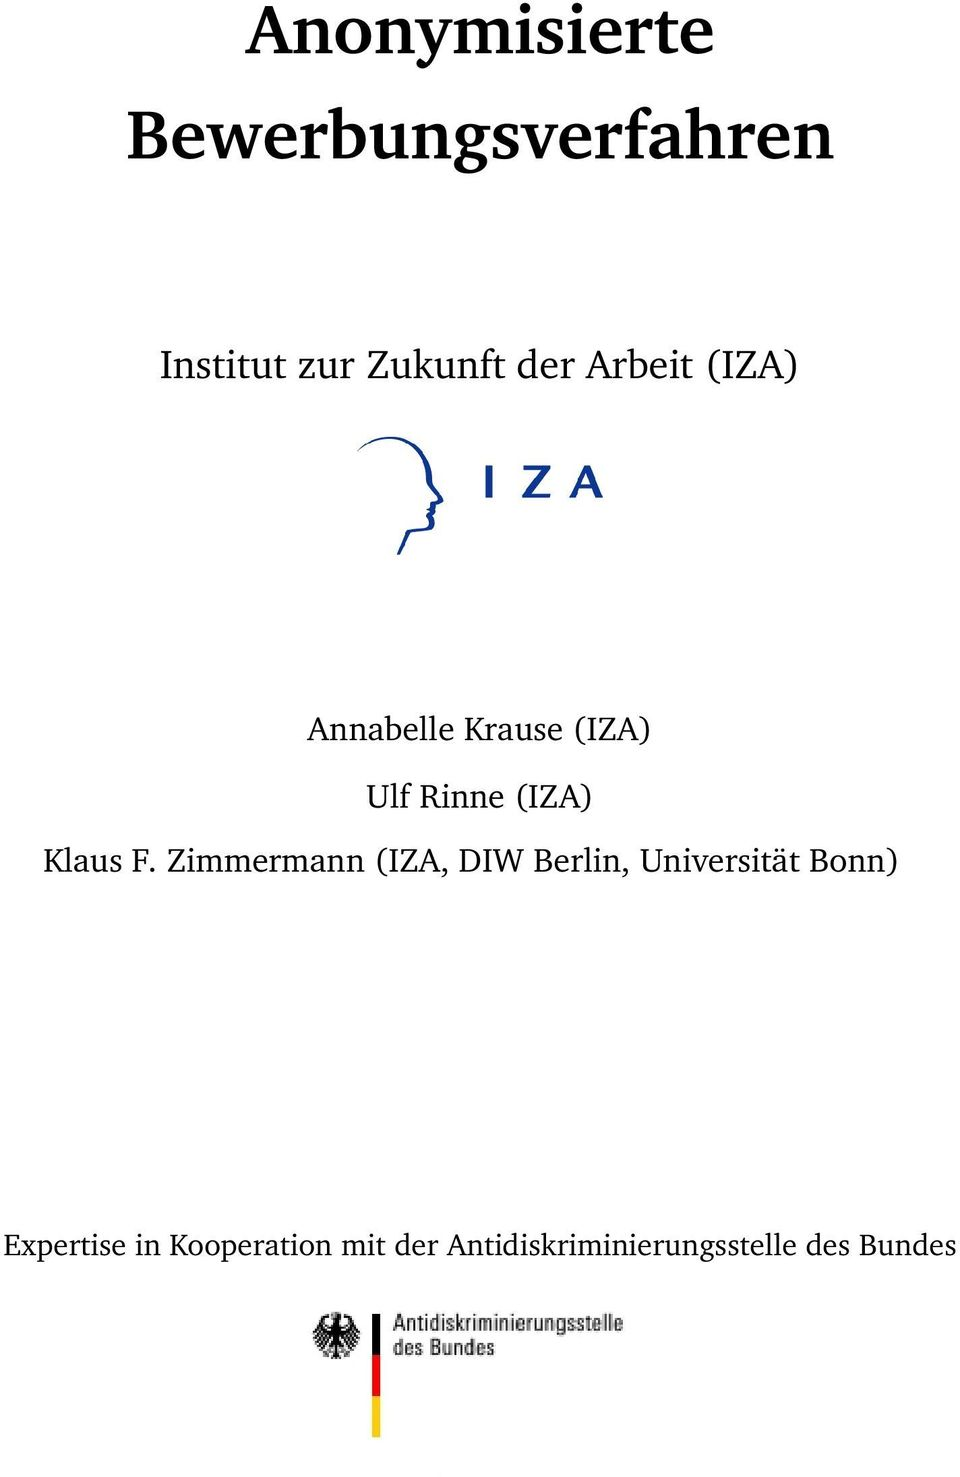 Zimmermann (IZA, DIW Berlin, Universität Bonn) Expertise in